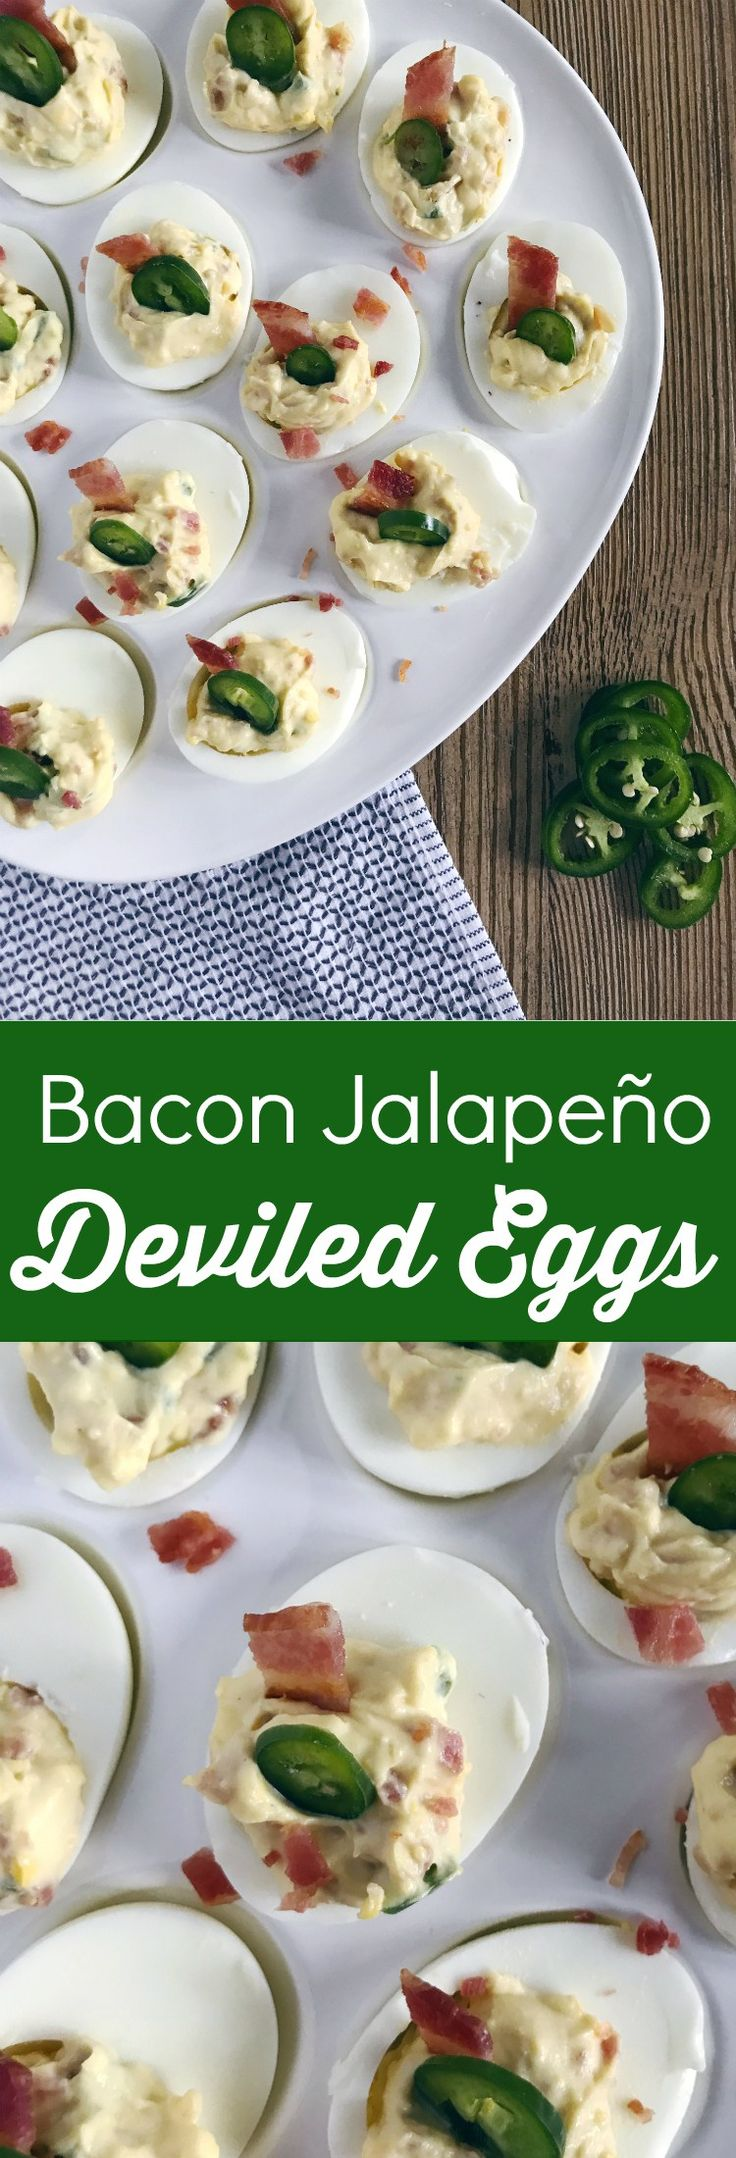 Zesty Bacon Jalapeño Deviled Eggs will rekindle your love of this classic southern appetizer. Serve these modern deviled eggs at any gathering and wow your party guests!